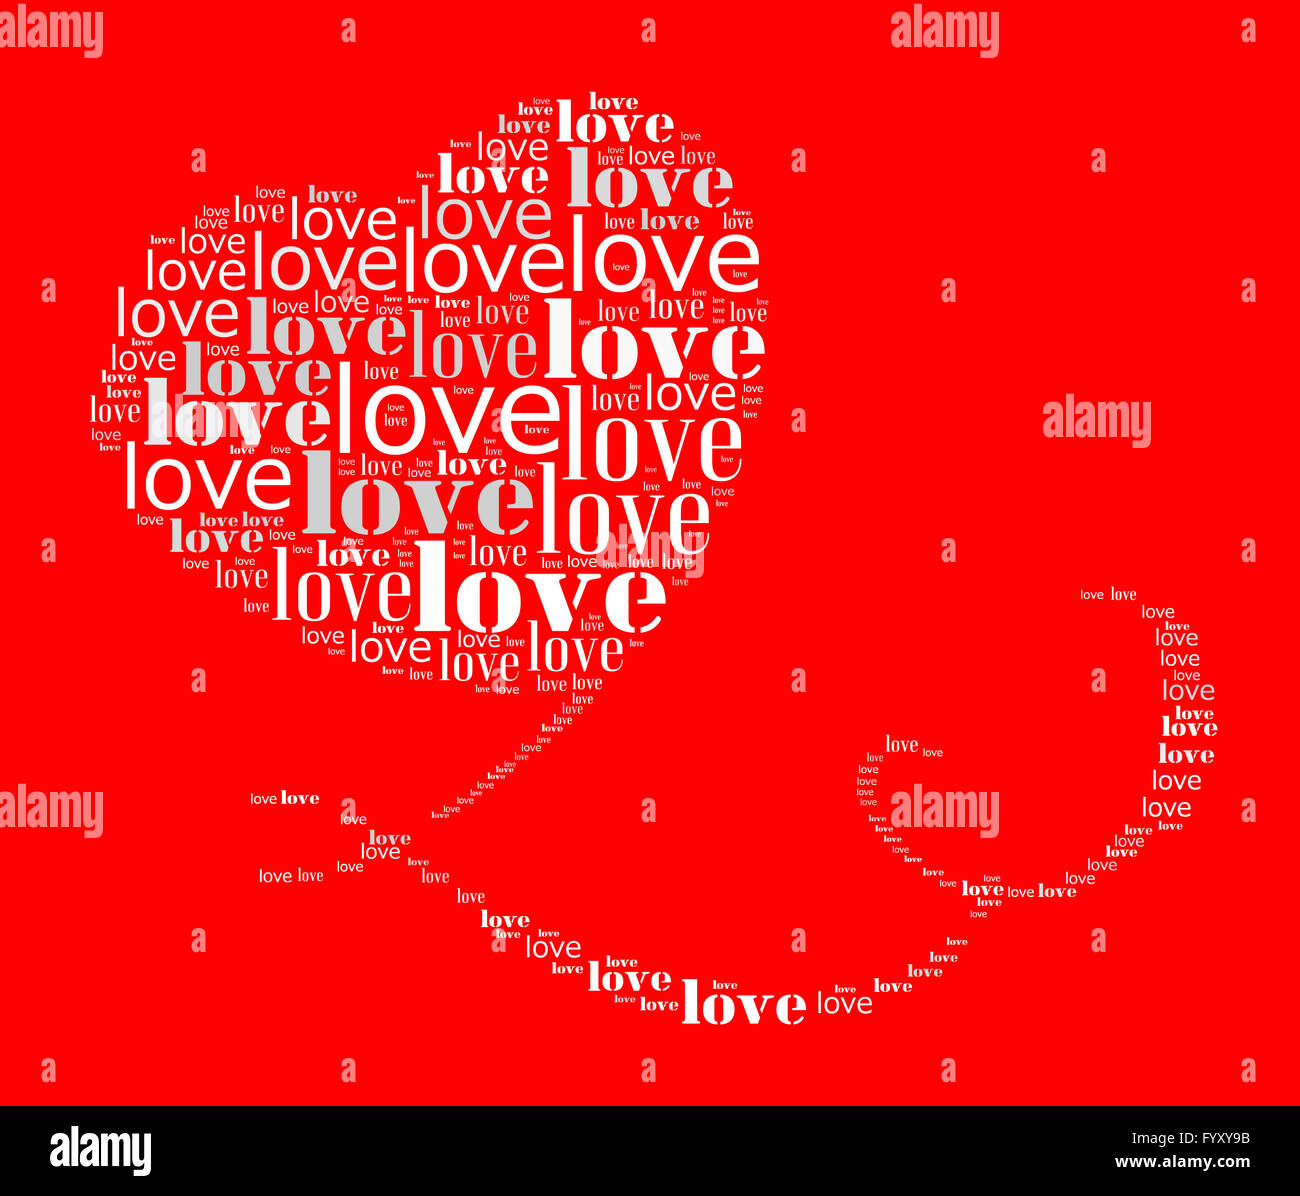 Valentines day card word cloud concept - Stock Image